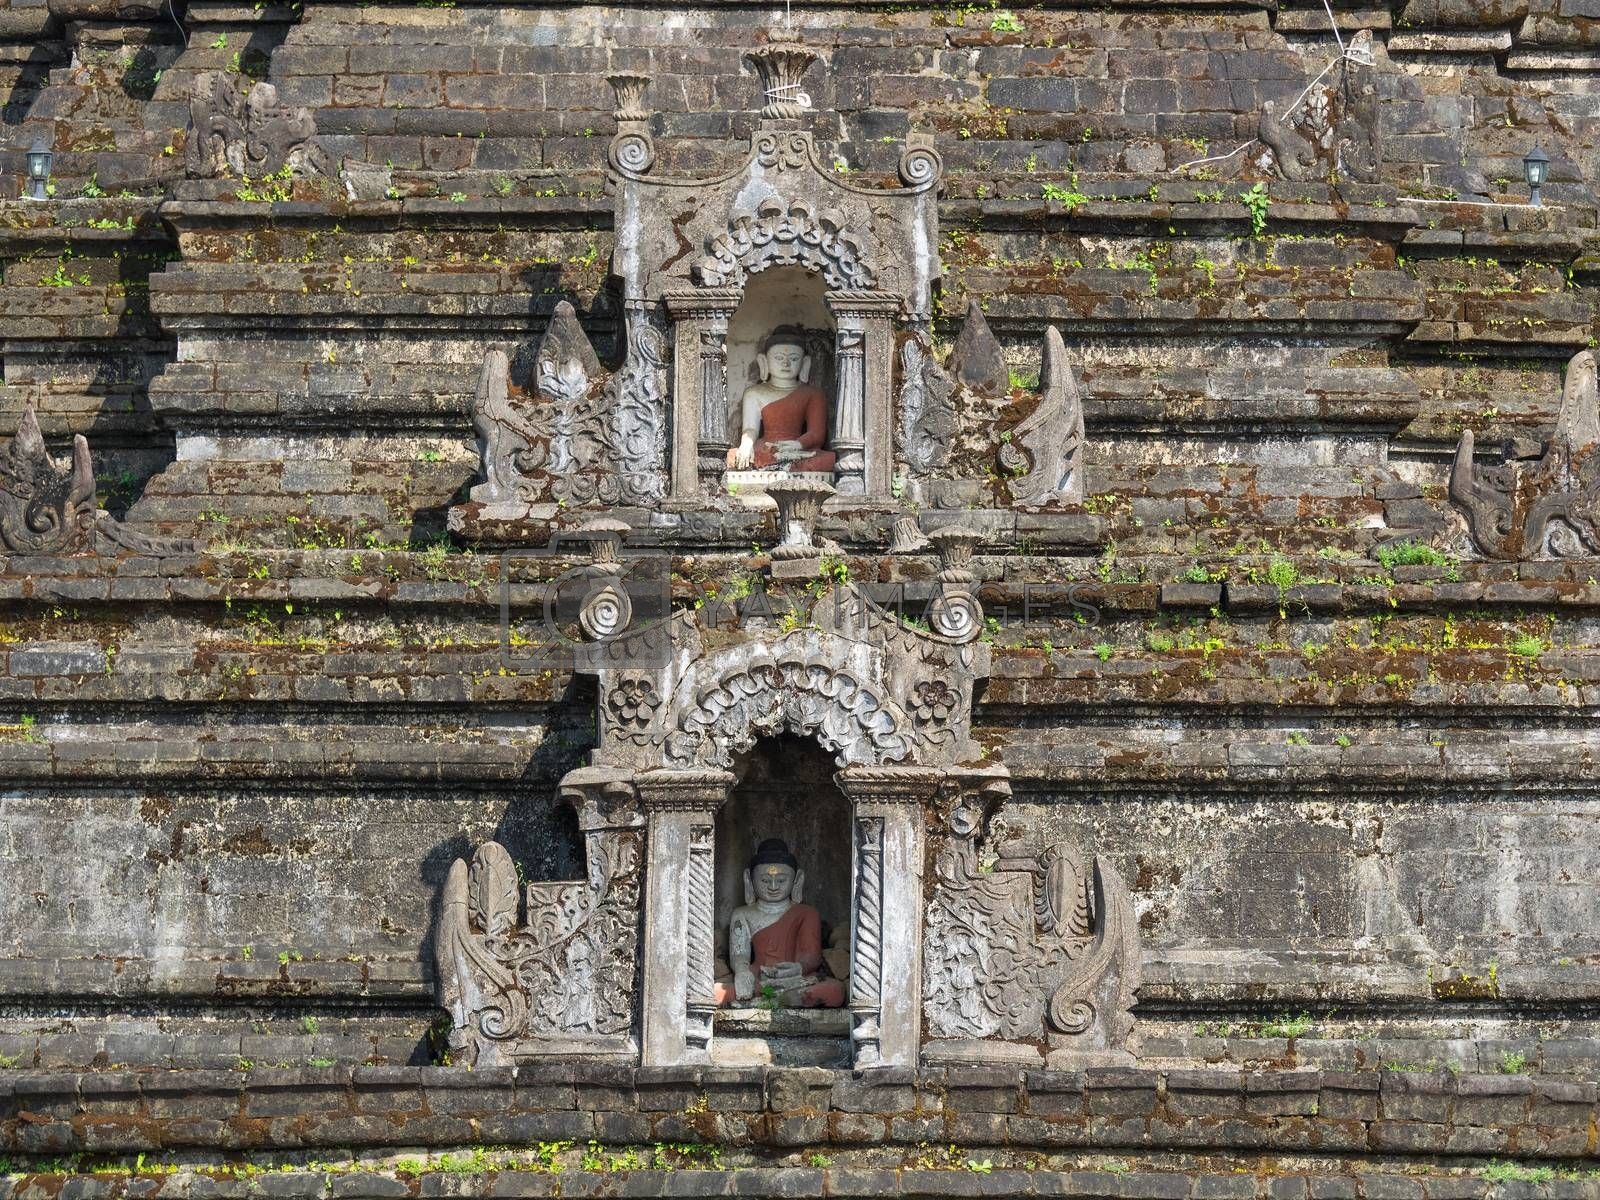 Detail of Sakya Man Aung, a pagoda in Mrauk U, the Rakhine State of Myanmar, with two small Buddha images in wall niches.